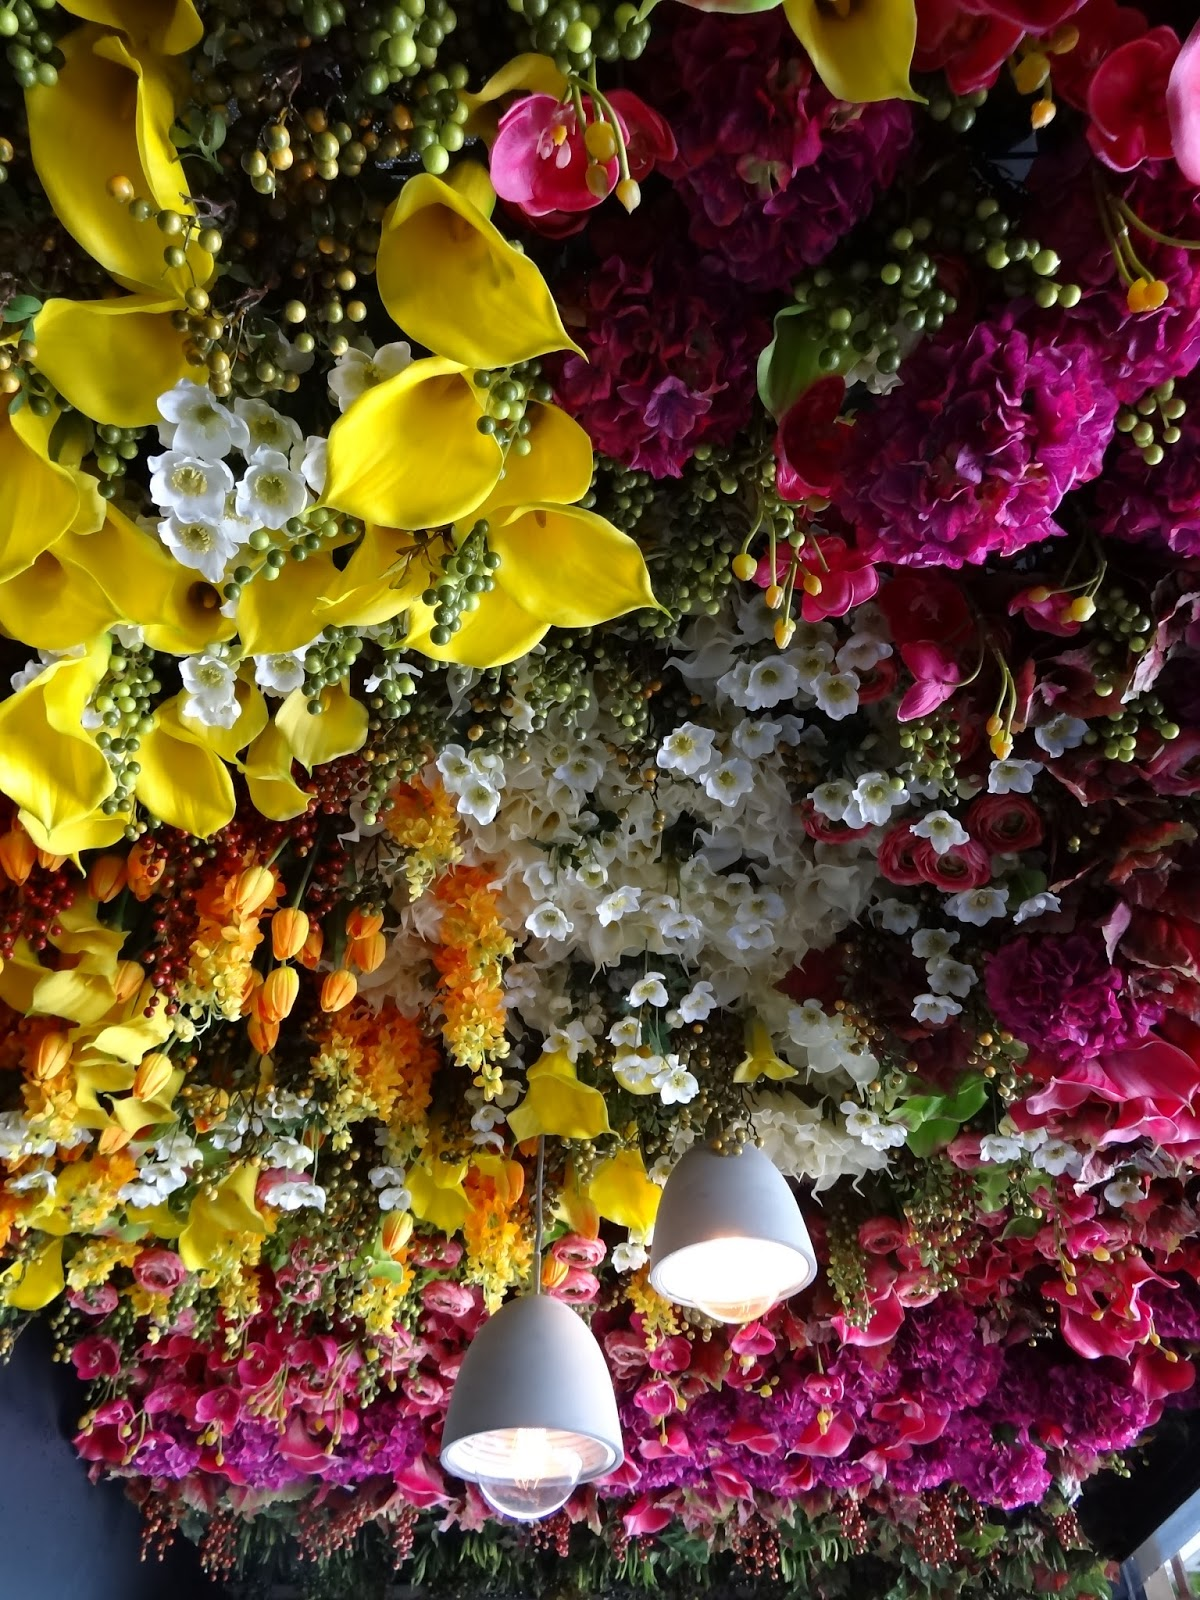 juice bureau, juice, cold pressed juice, adelaide, norwood, detox, cleanse, fruit, vegetable, organic, local produce, flower ceiling